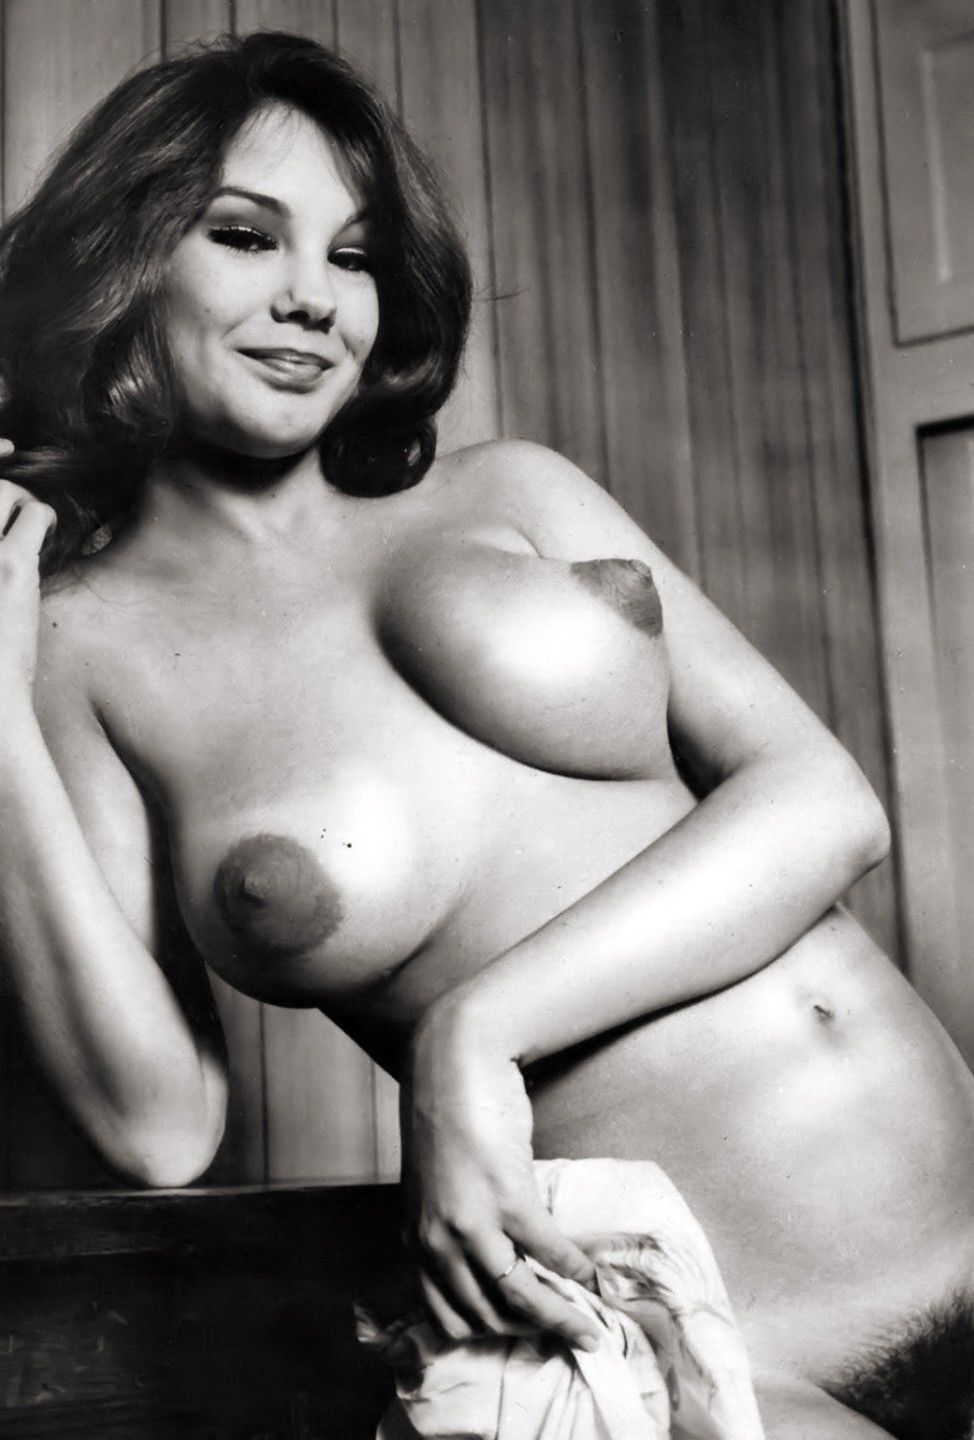 peggy cooper | retro sexy | pinterest | 60 s, vintage and nude